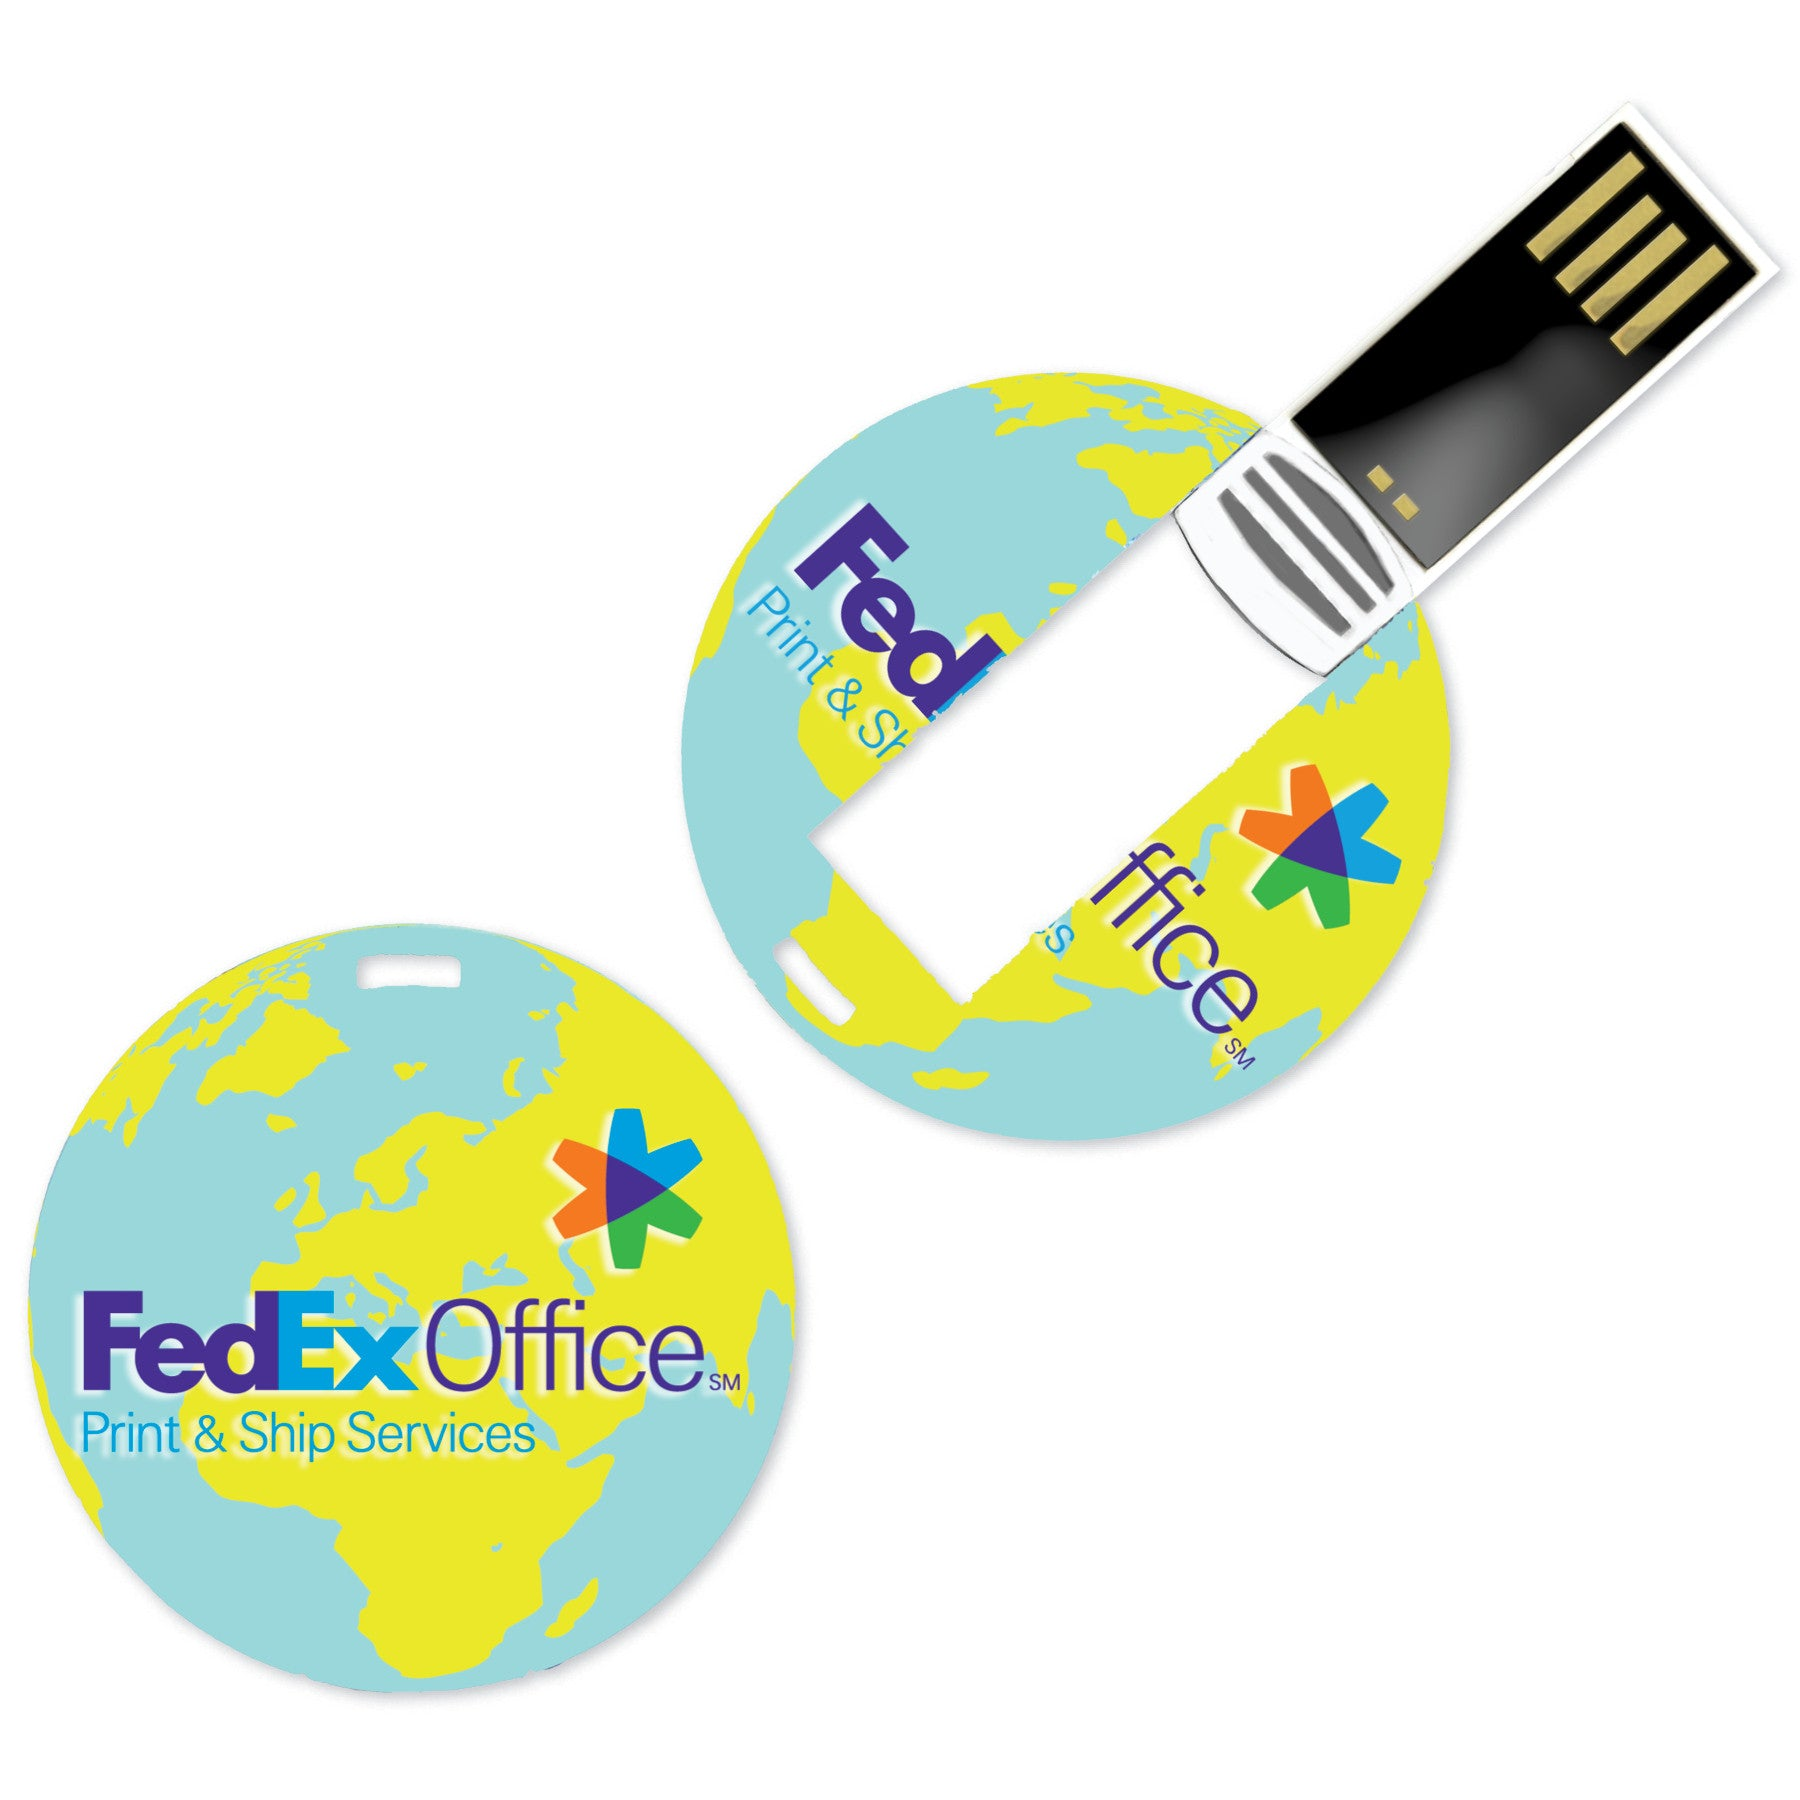 usb flash drives thumb drive promotional giveaways promorx